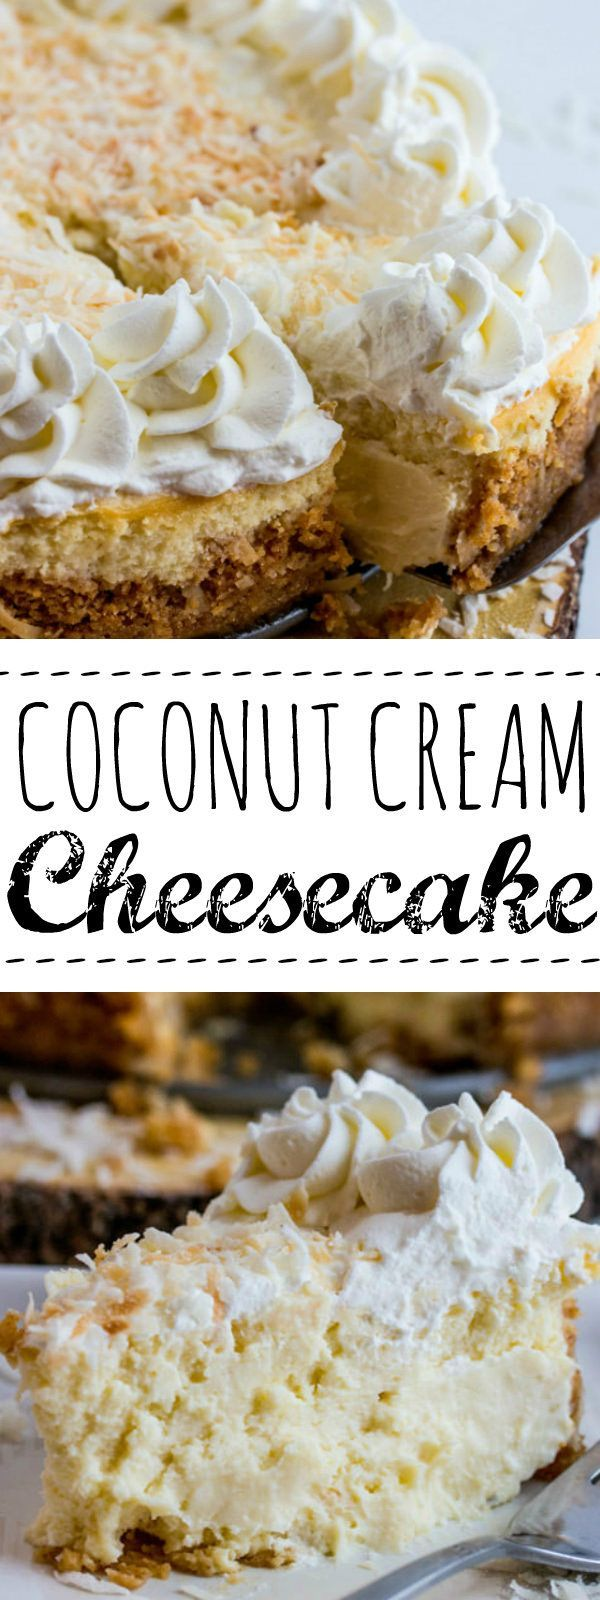 Creamy, rich and delicious this Coconut Cream Cheesecake takes the traditional pie and gives it a fun twist! Who loves cheesecake raise your hand! *RAISES HAND HIGH WHILE JUMPING UP AND DOWN* Surprisingly my husband Mr. Non Sweets Lover actually will eat cheesecake all day every day if he could.[Read more]